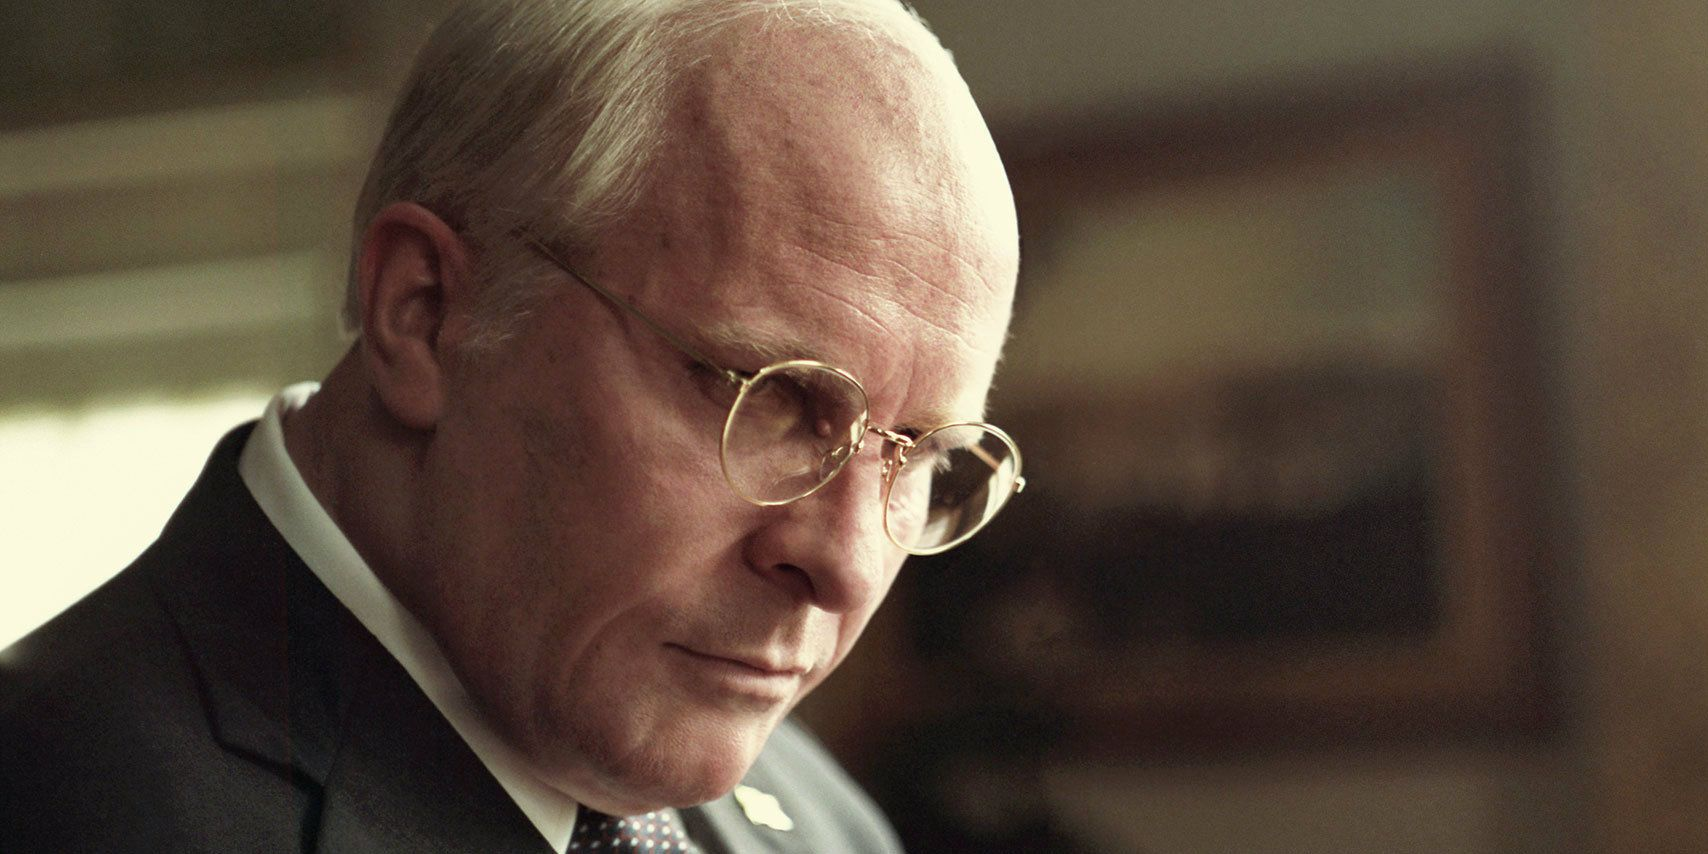 Vice Review: Dick Cheney's Biopic is a Feel-Bad Movie For the Holidays